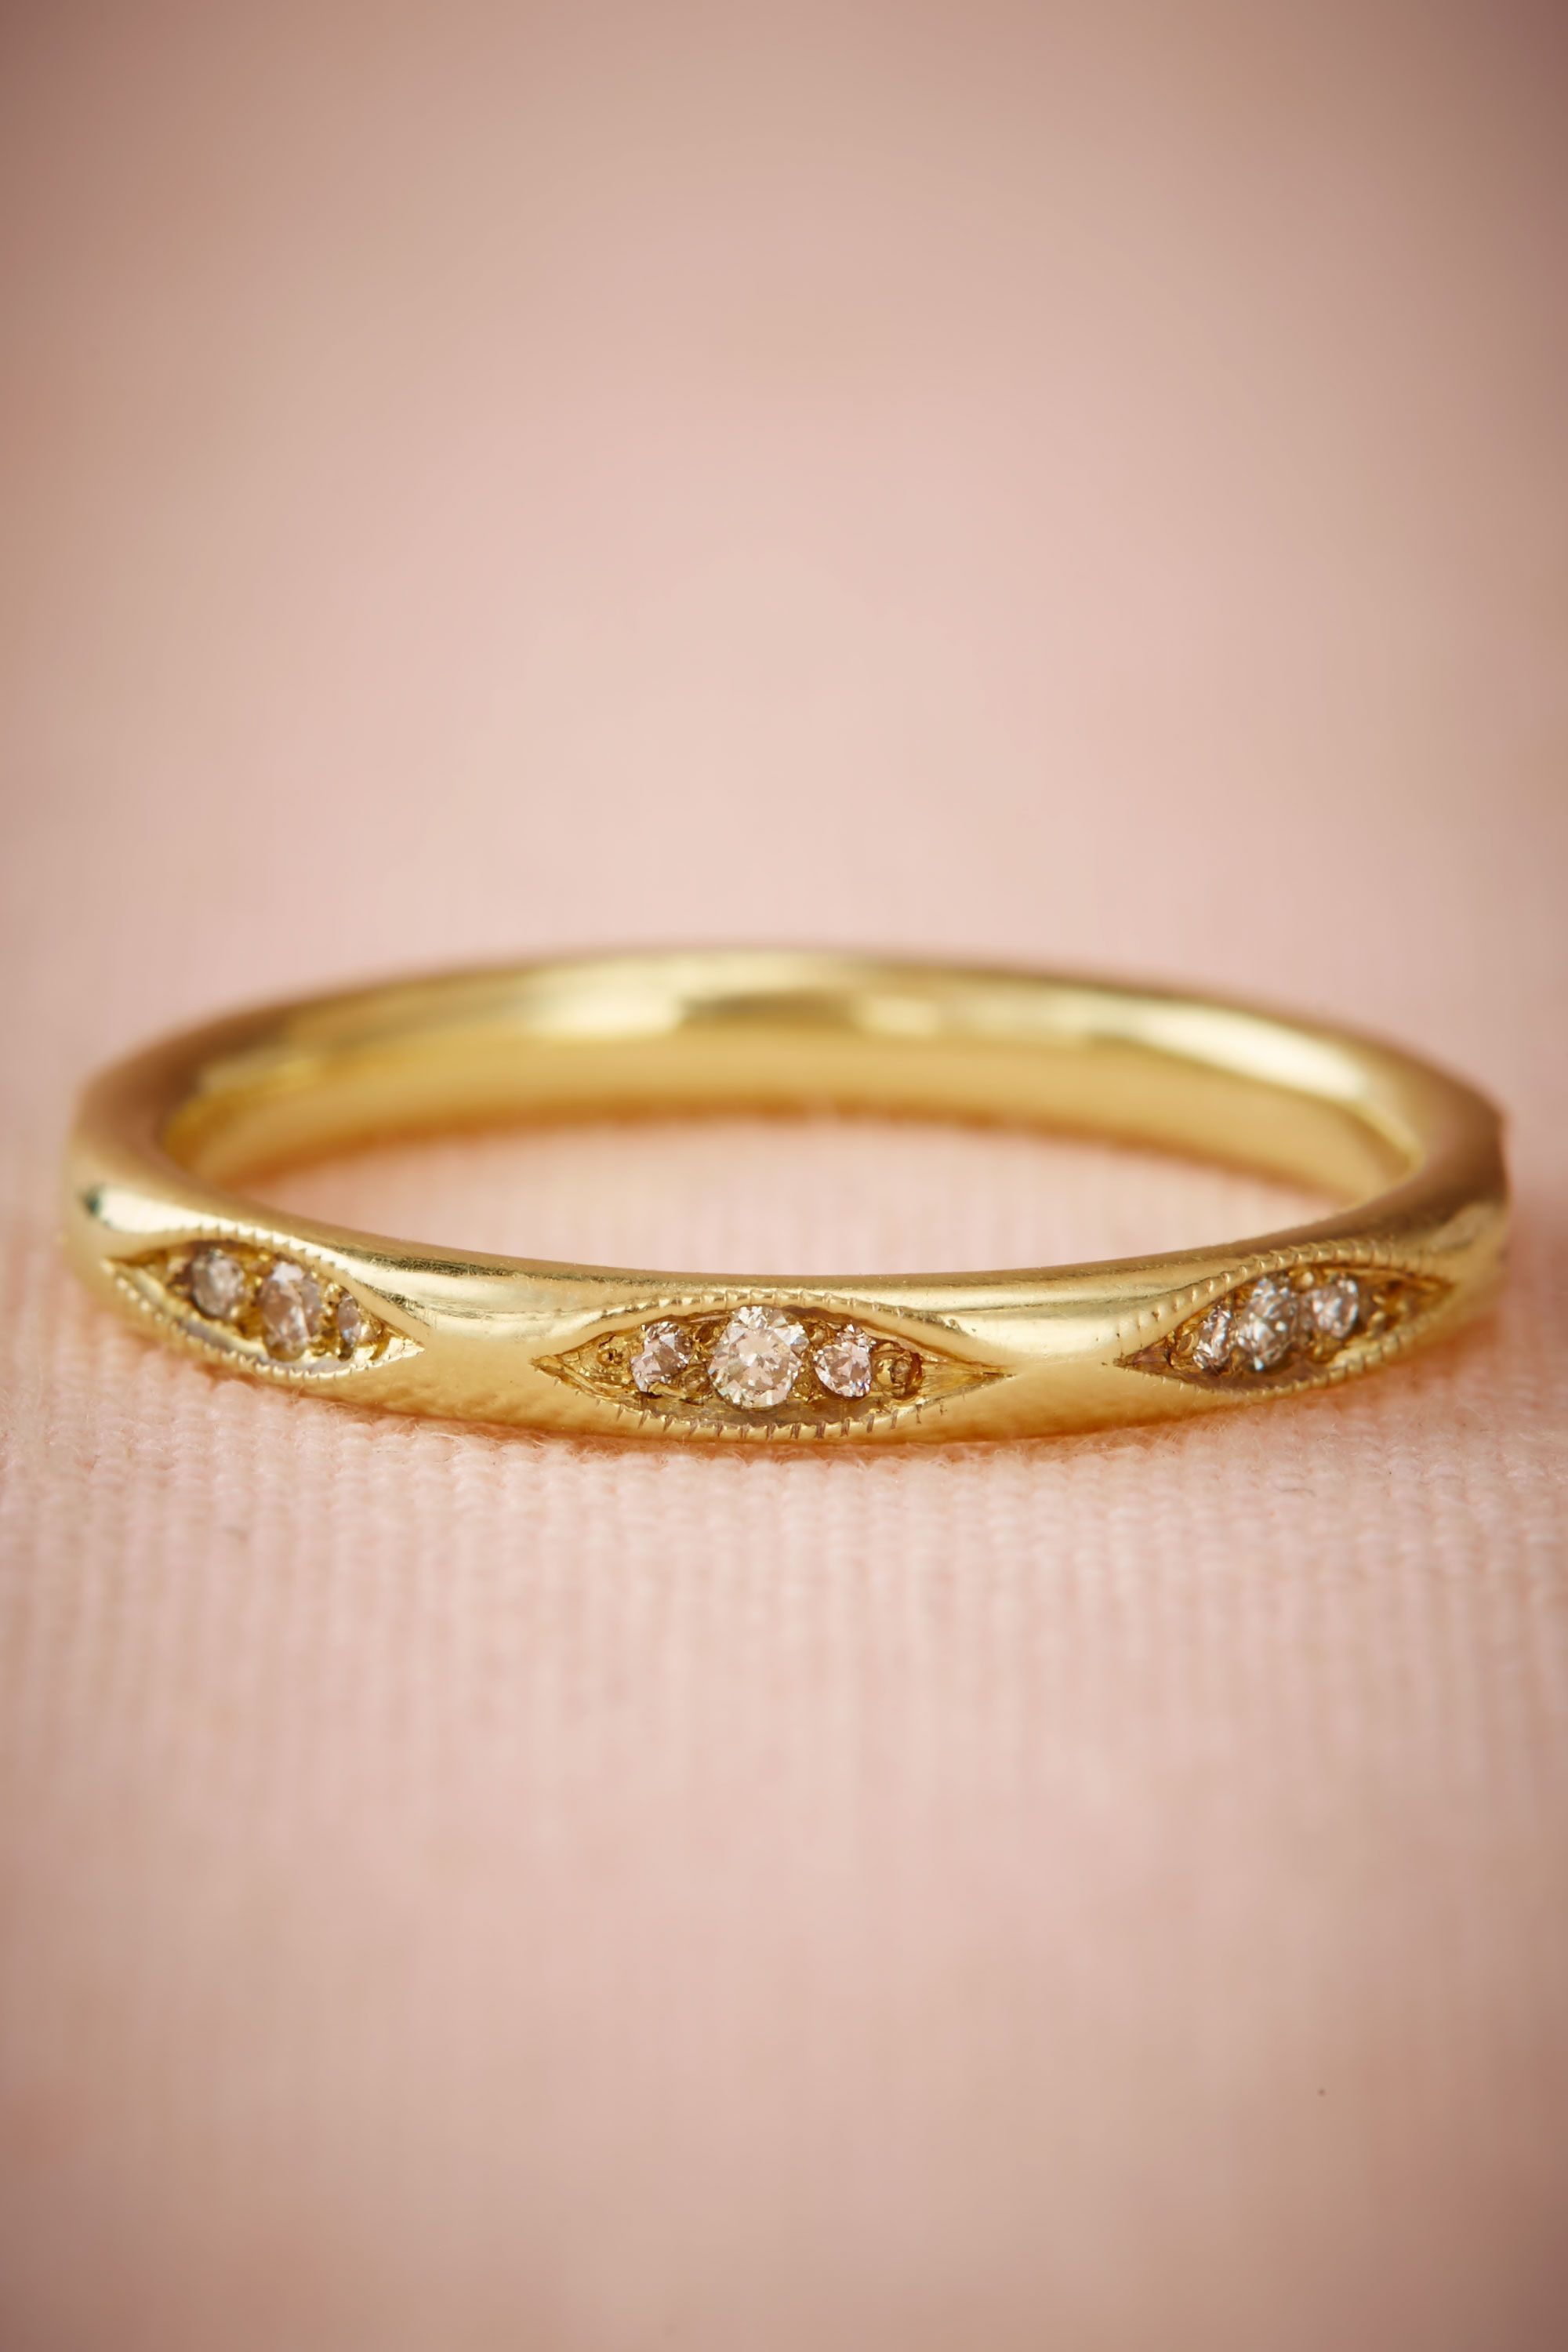 BHLDN\'s Ila Flannery Ring in Yellow Gold | Ring, Wedding stuff and ...